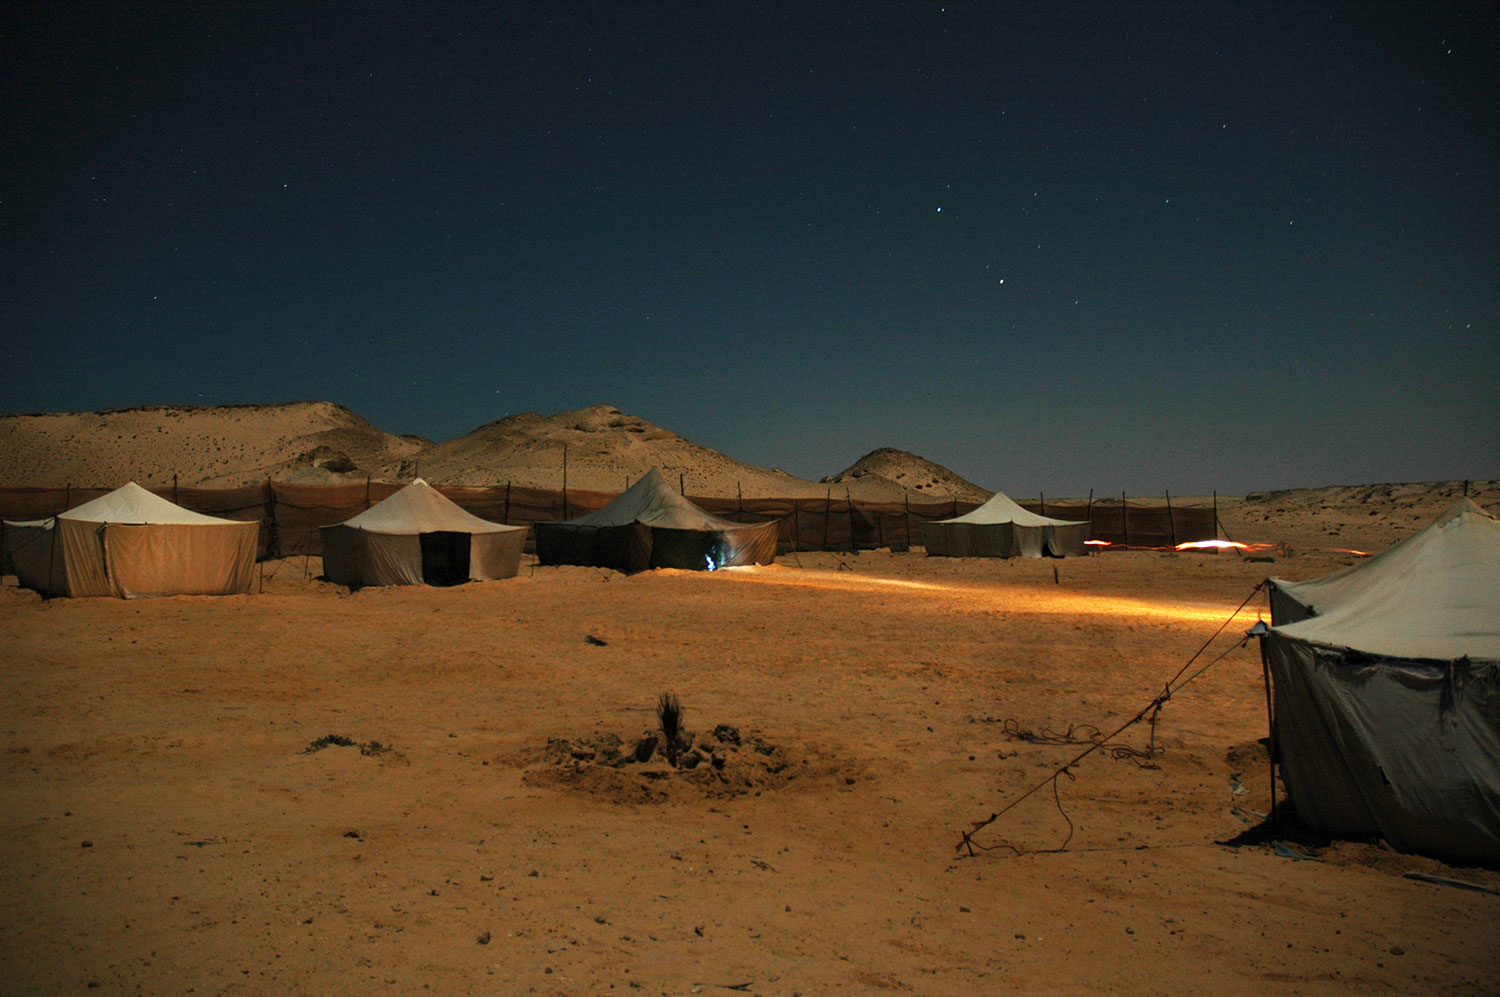 Dakhla camp at night